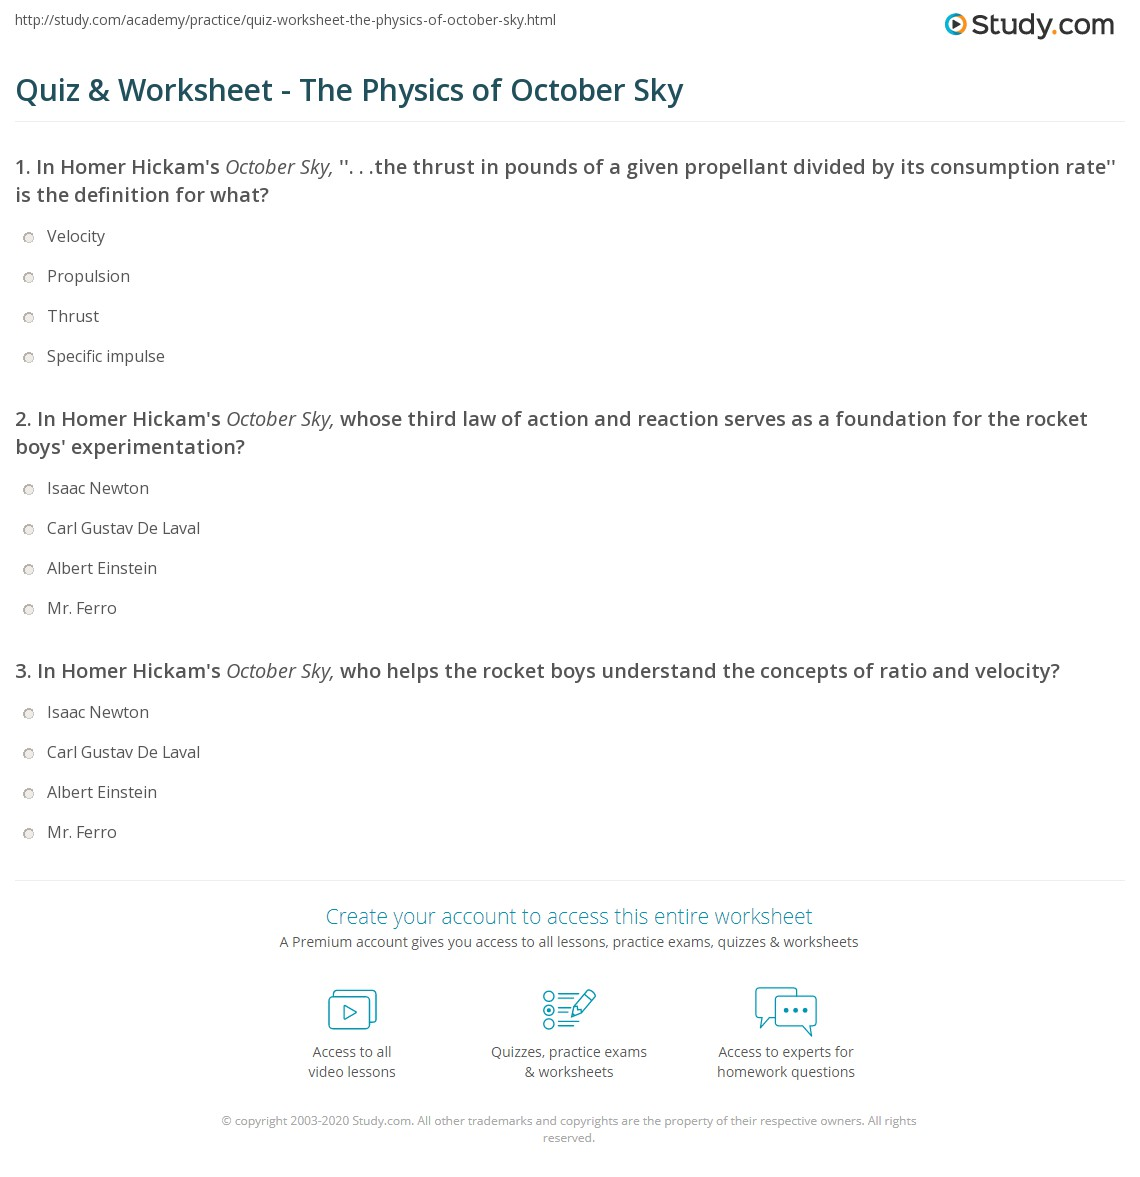 Worksheets October Sky Worksheet Answers quiz worksheet the physics of october sky study com print used in worksheet